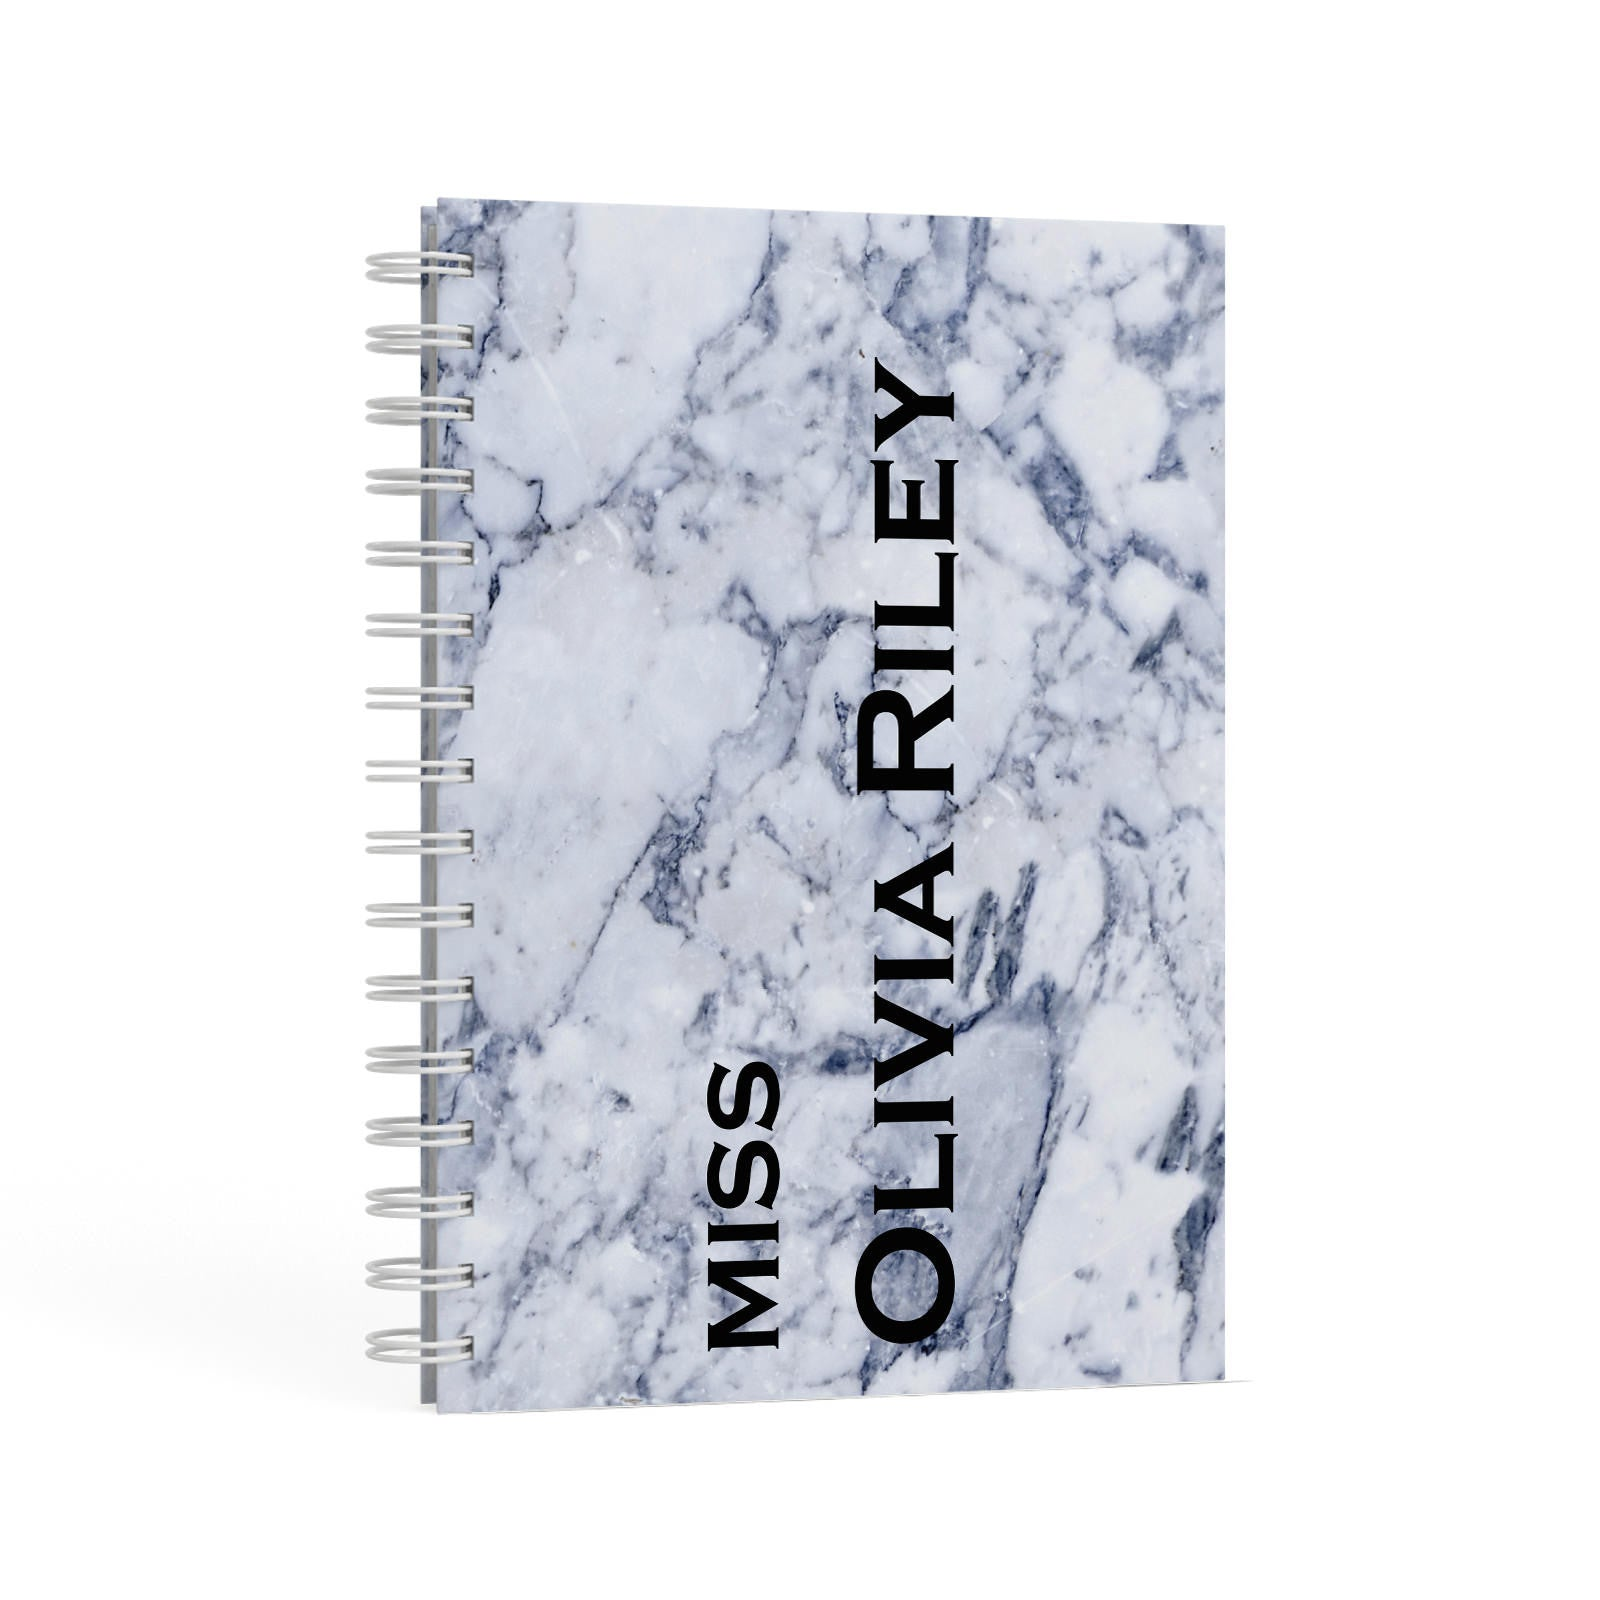 Full Name Grey Marble A5 Hardcover Notebook Second Side View